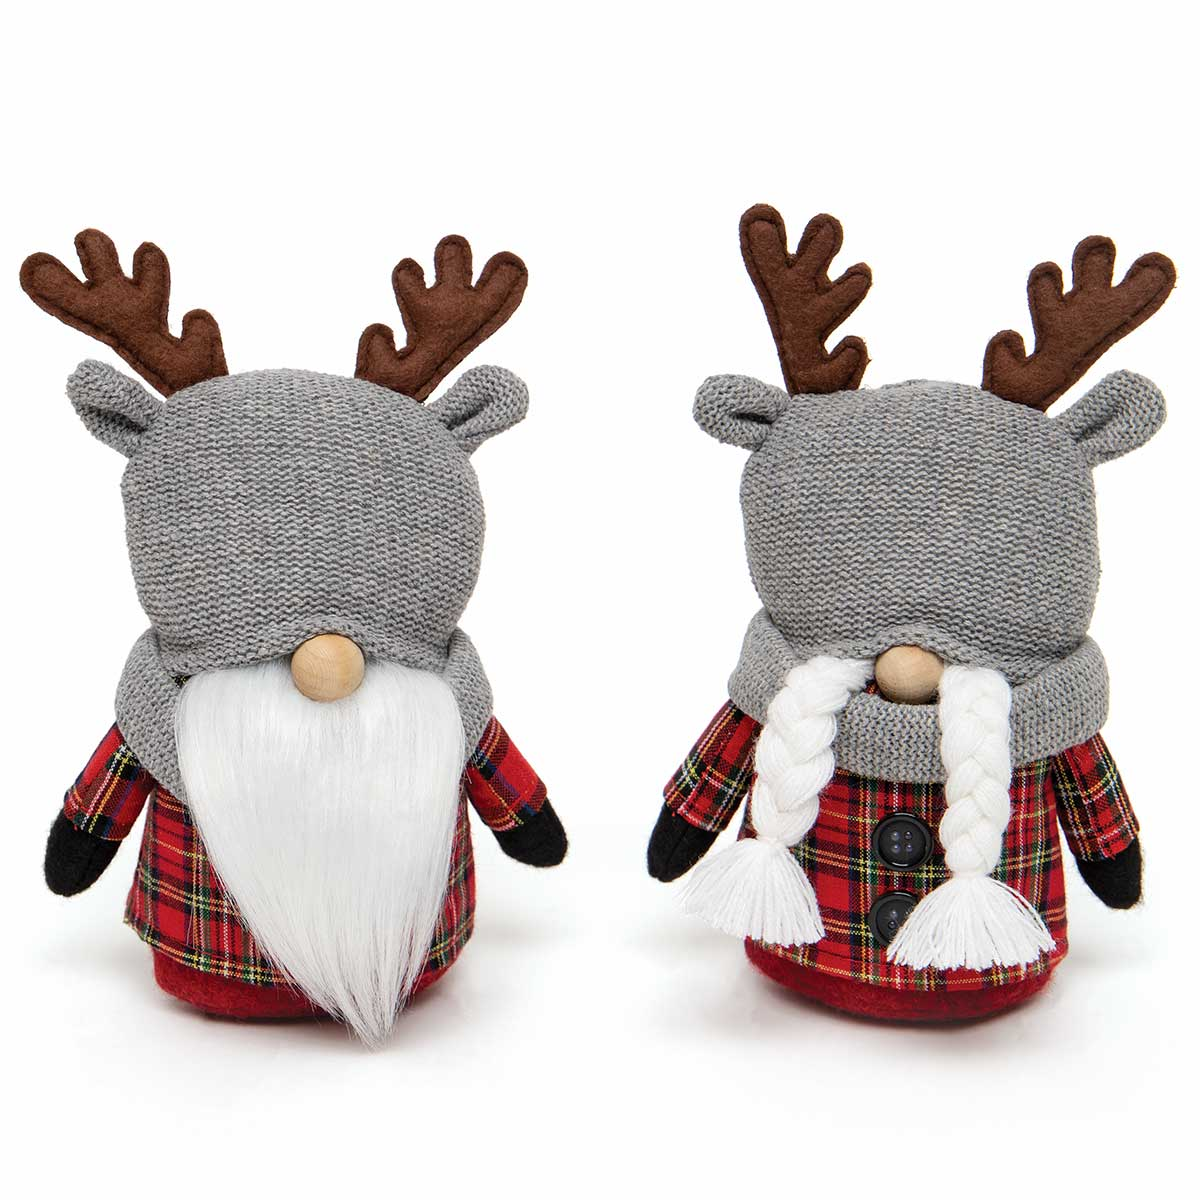 OH DEER GNOME COUPLE ORNAMENT RED PLAID WITH REINDEER